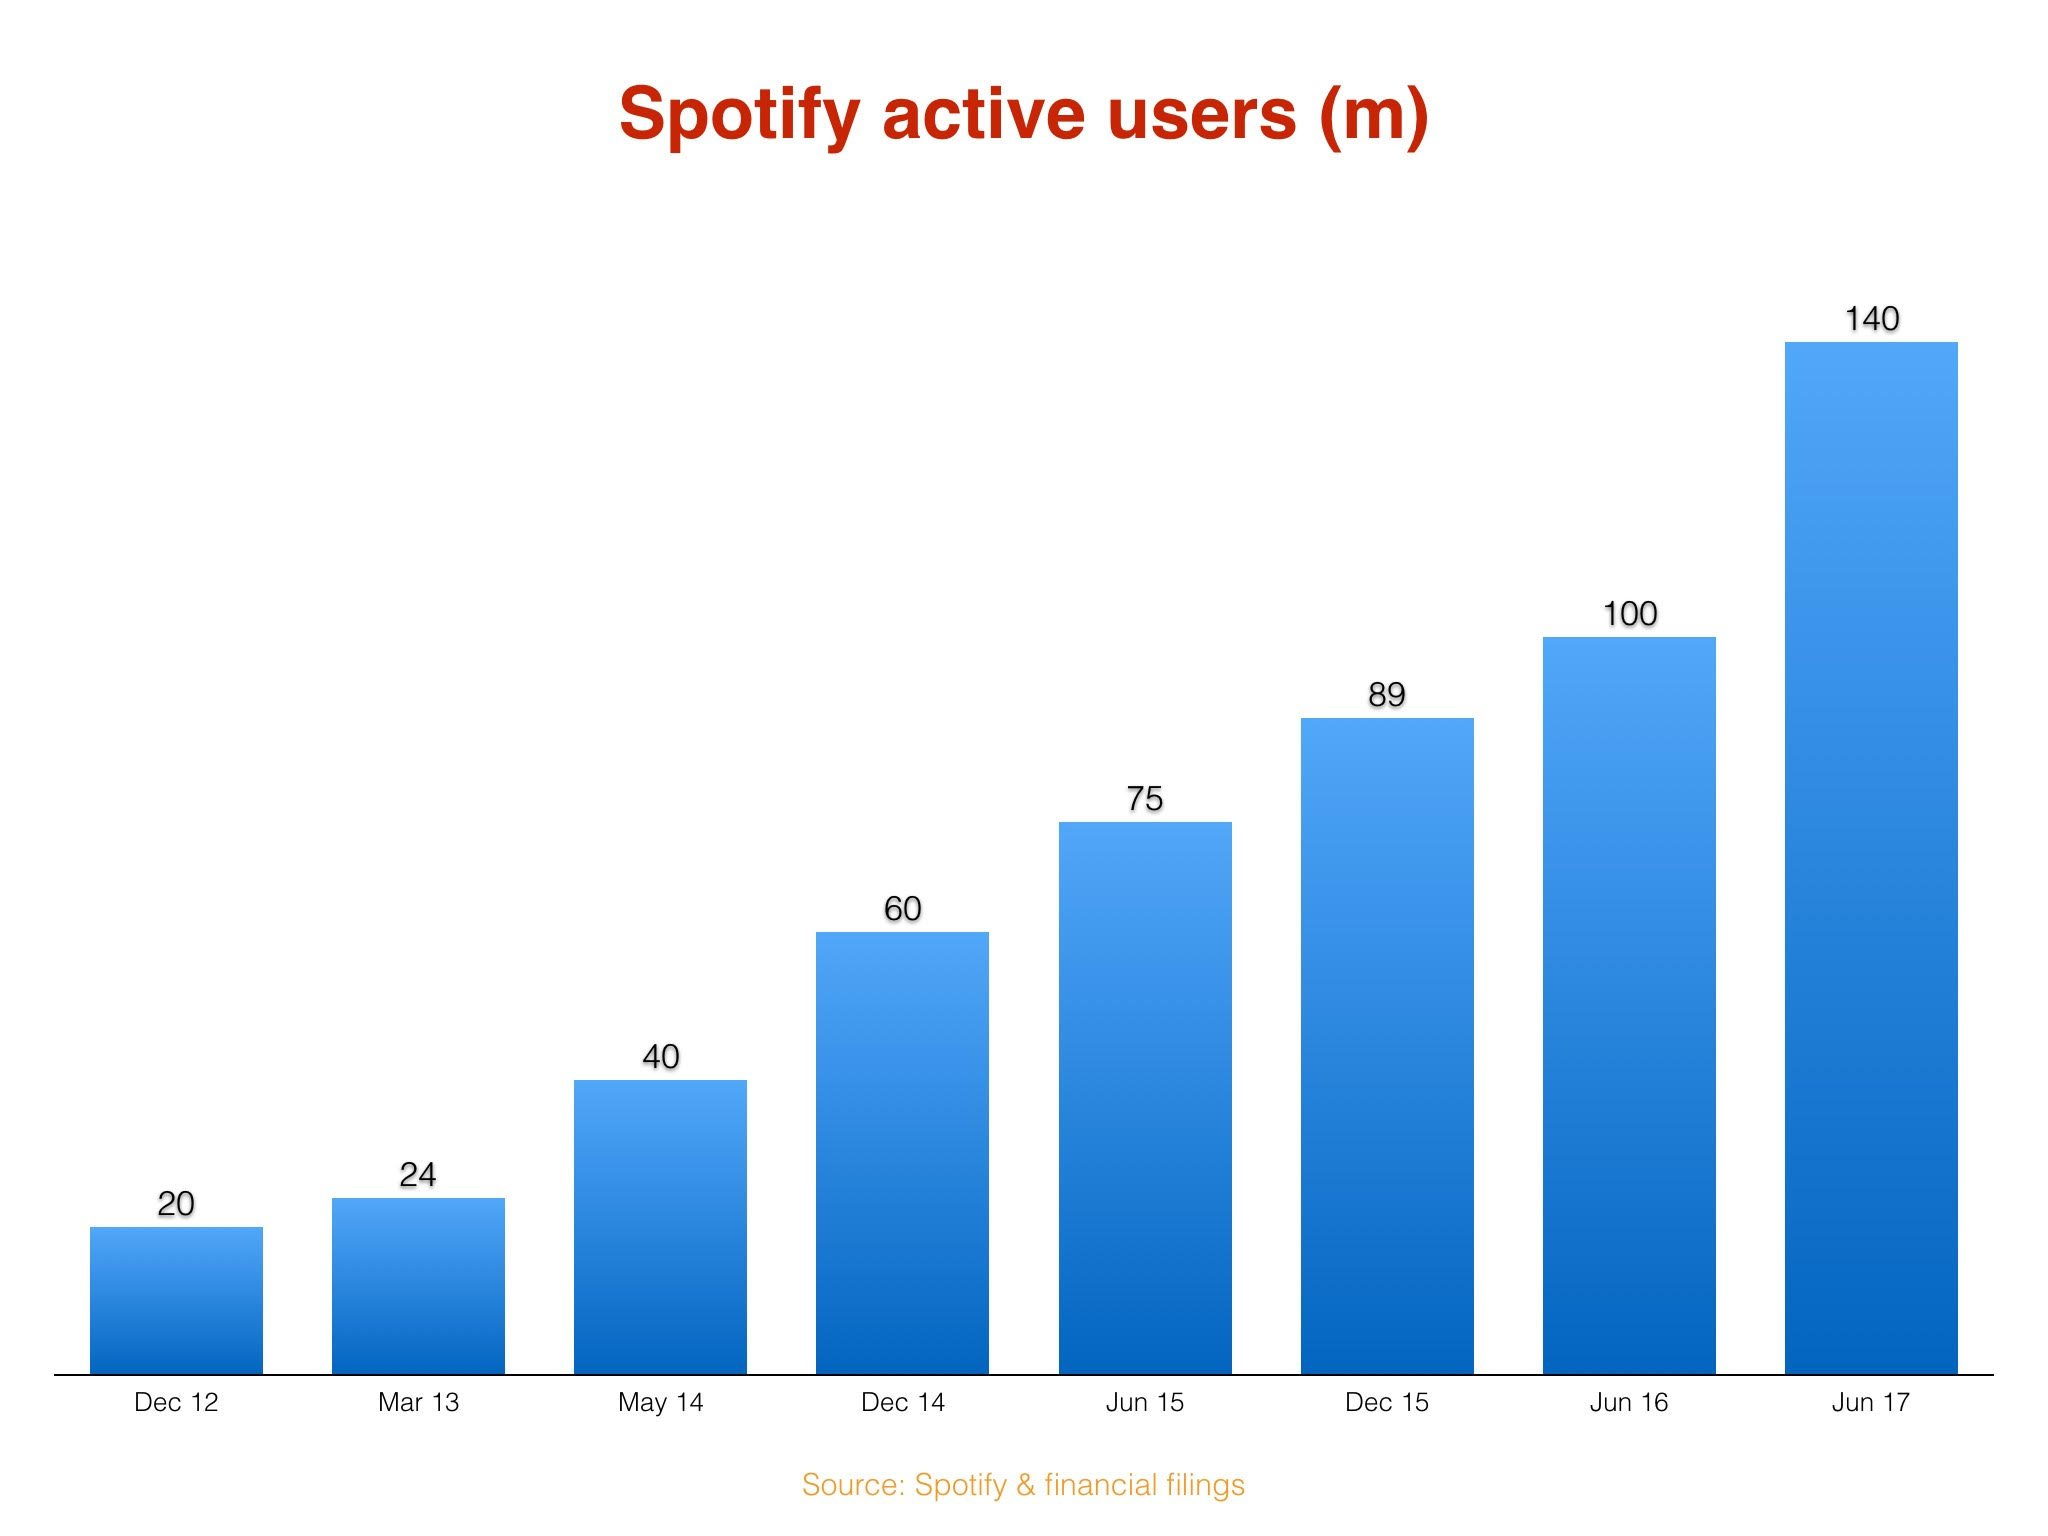 Spotify Swells to 140 Million Subscribers, to Pay $2 Billion to Labels